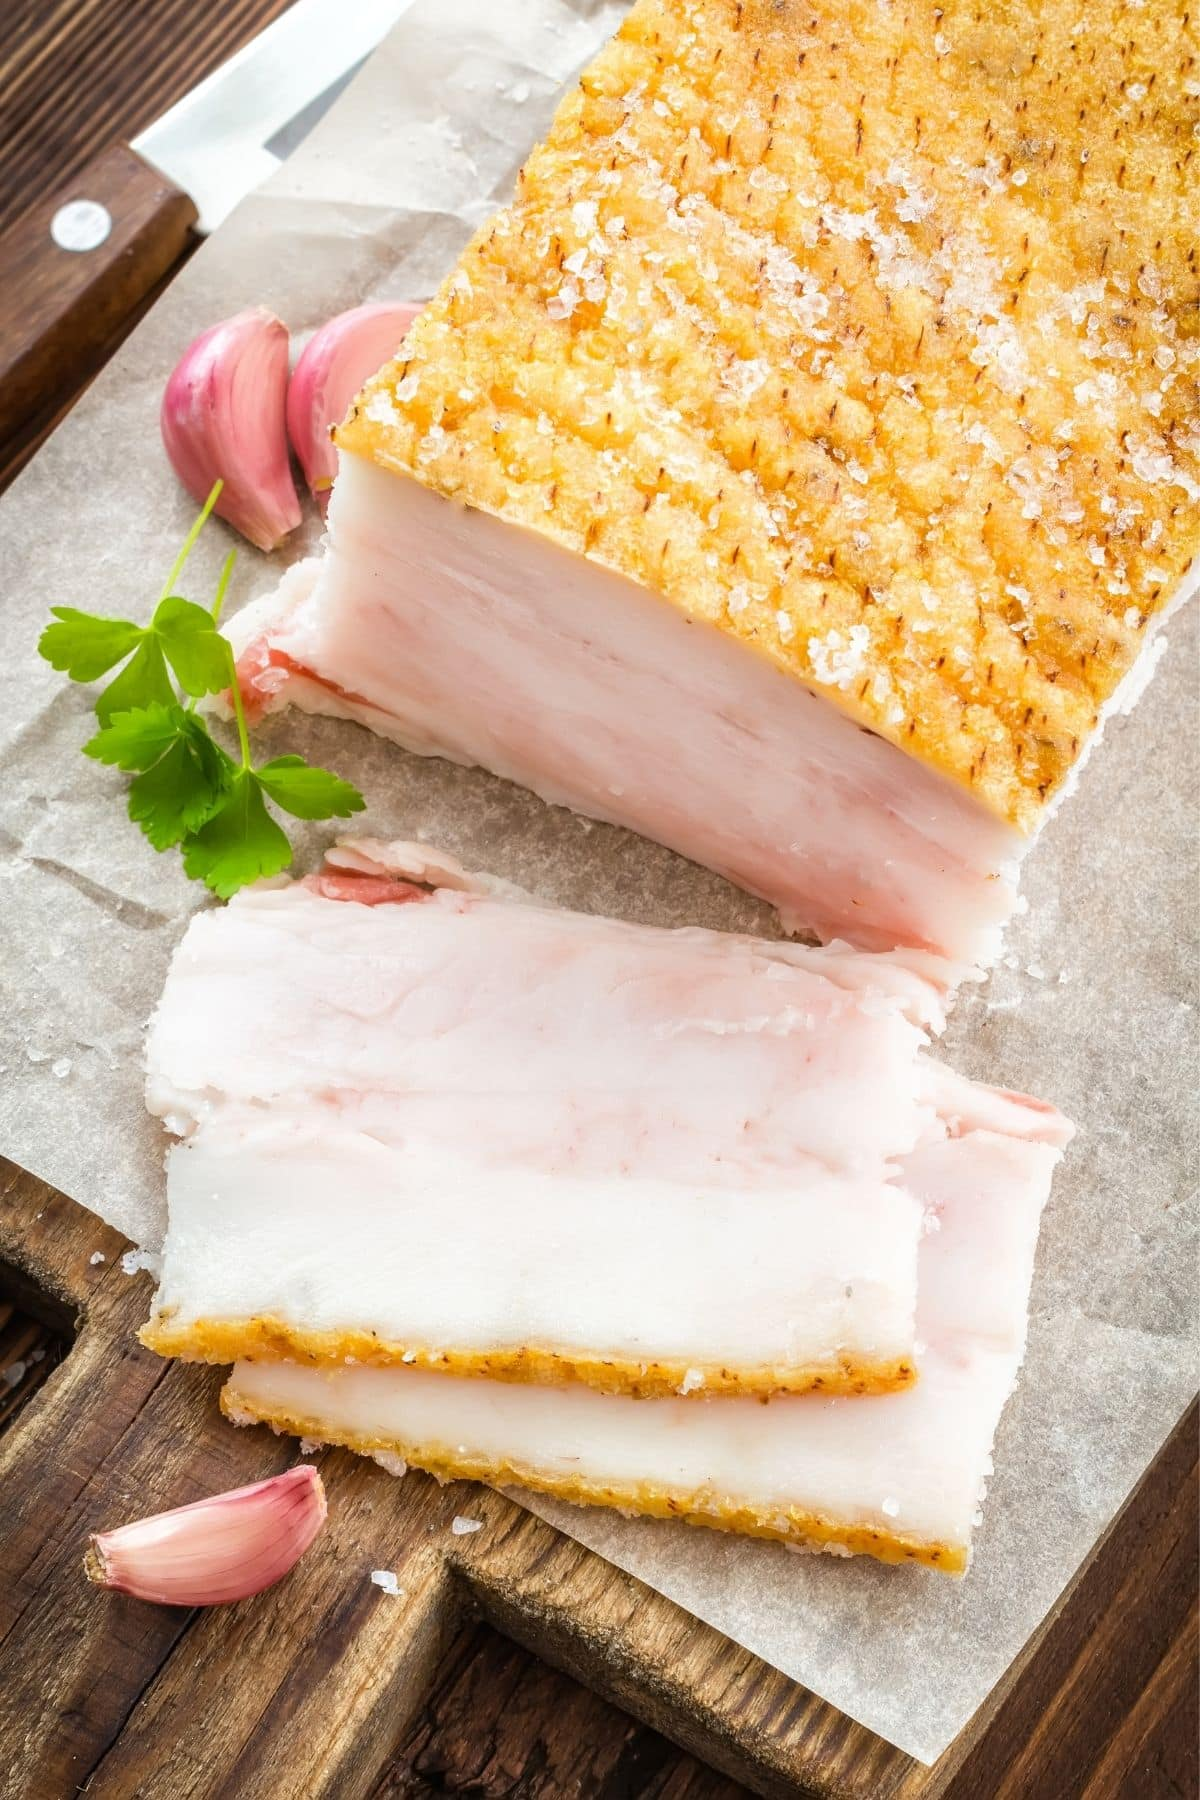 slab of bacon fat ready to be used in cooking